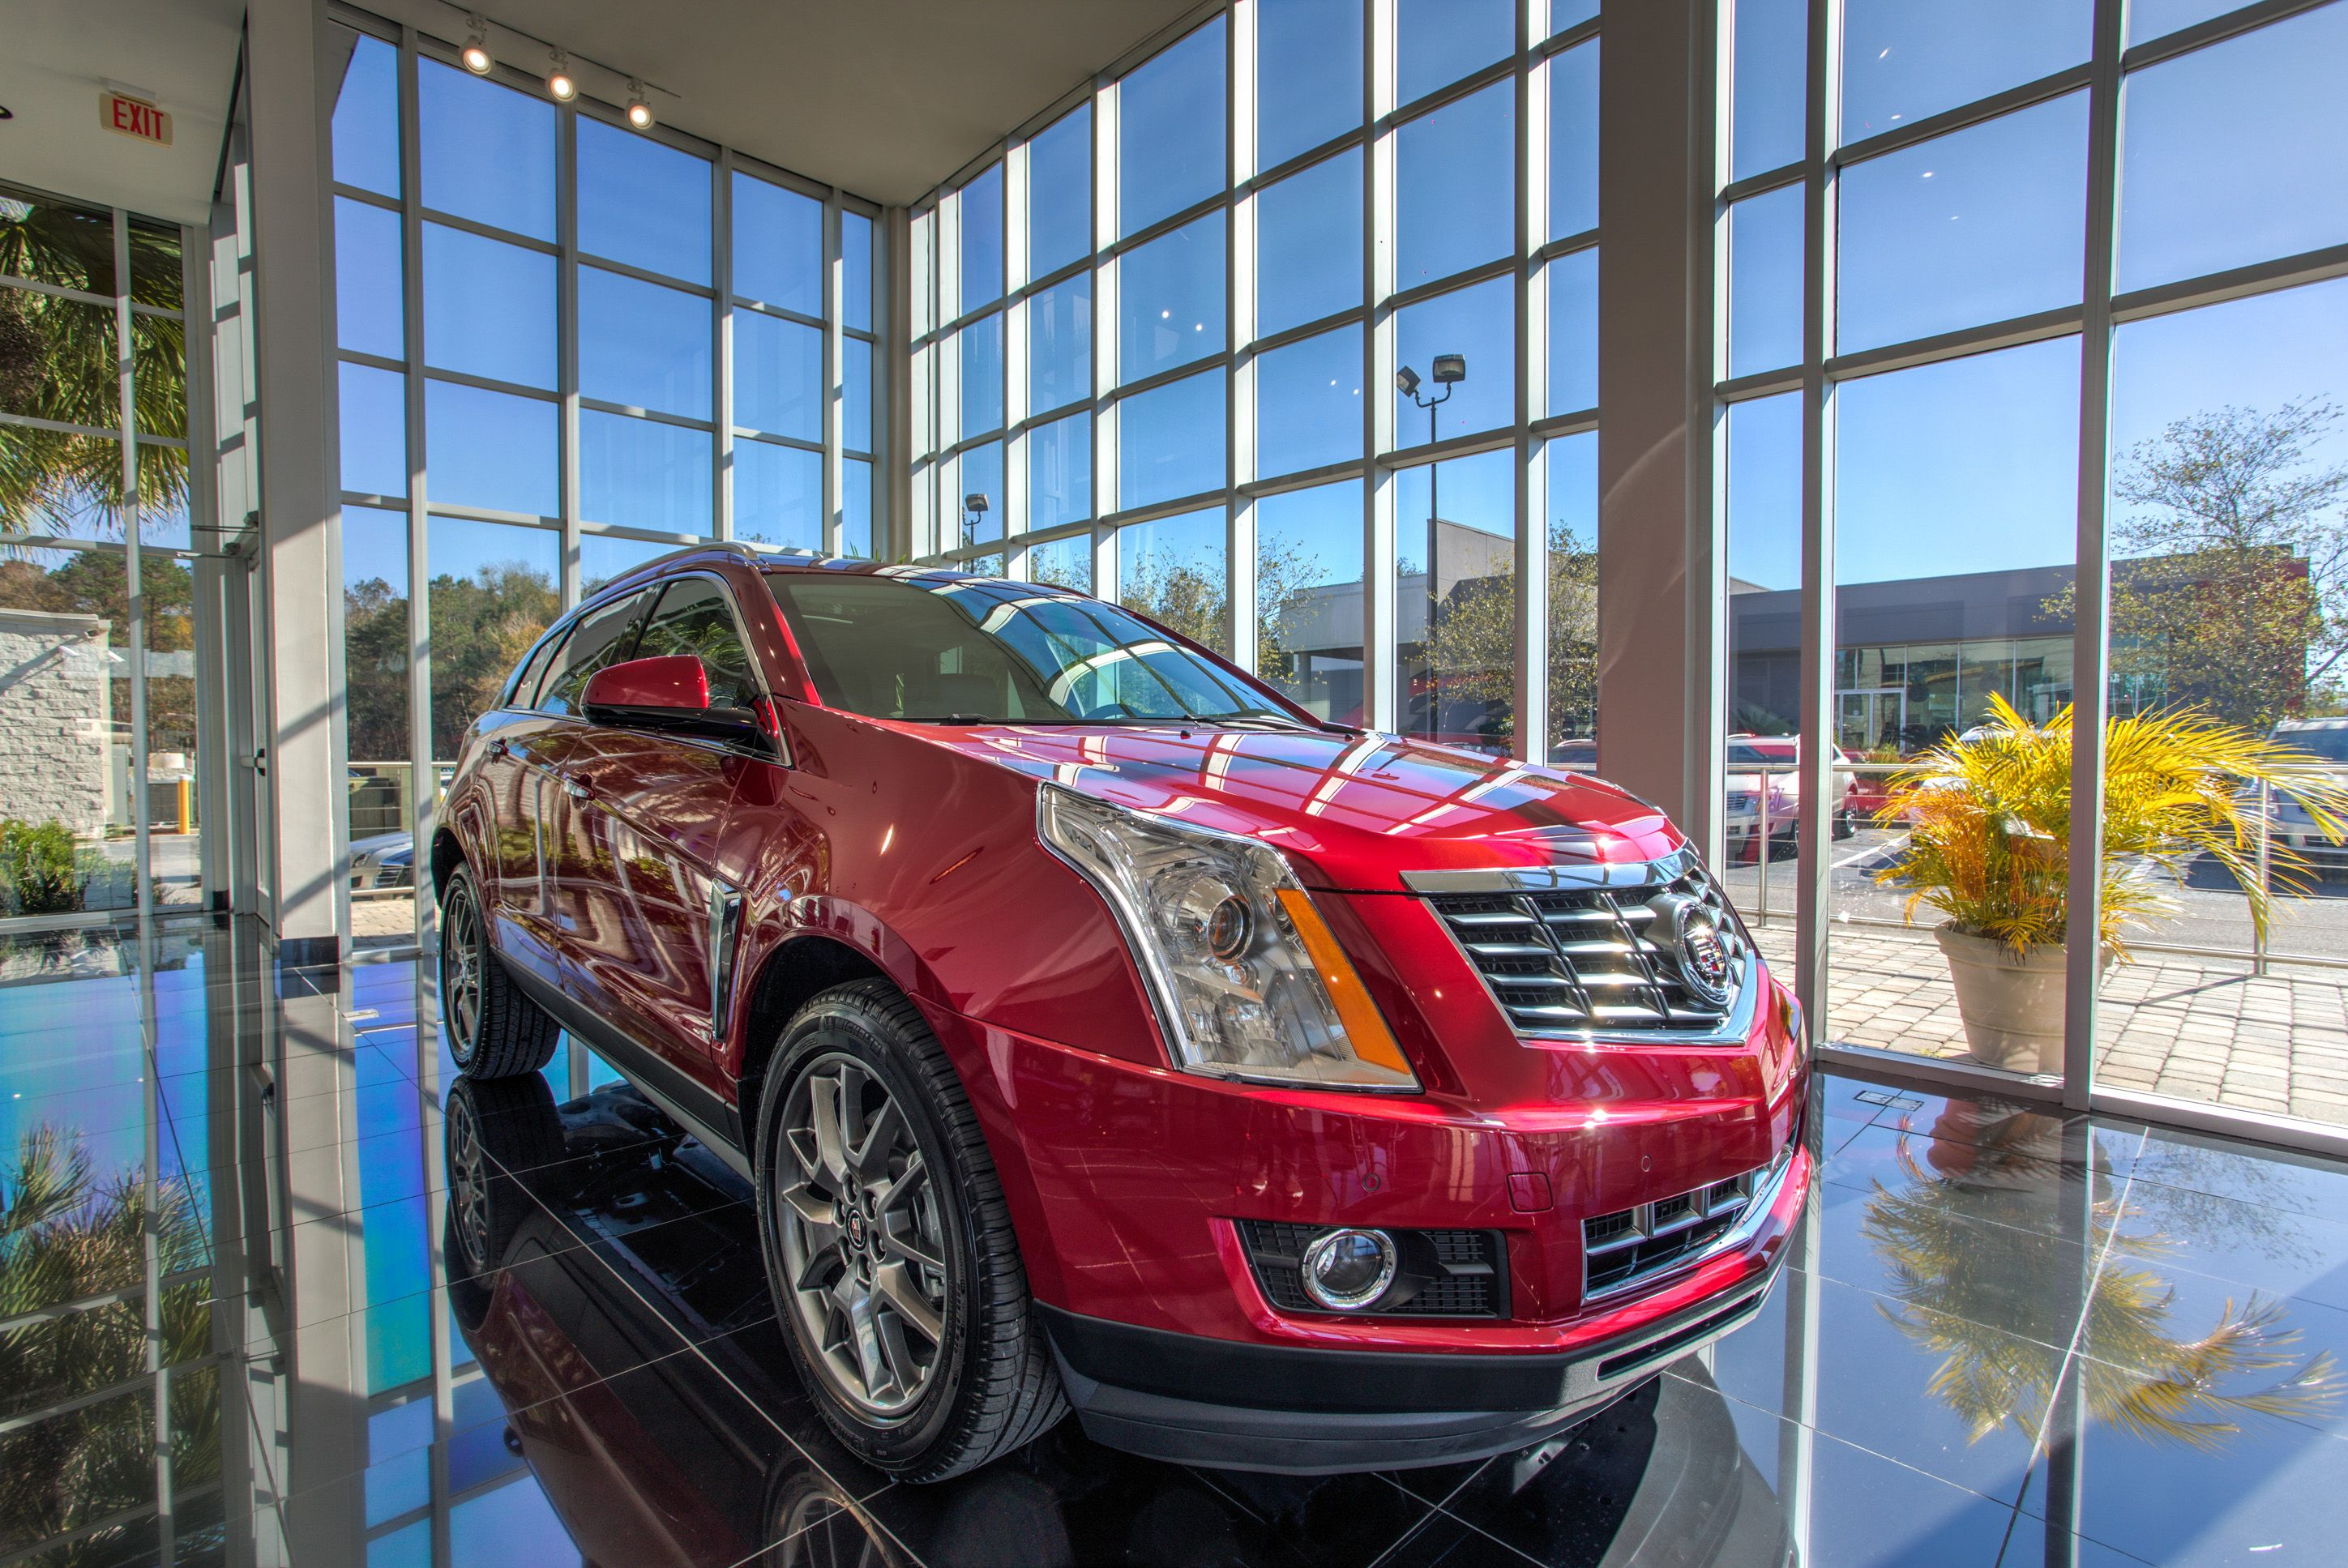 Fields Cadillac Jacksonville Florida >> Our Redesigned Cadillac Jacksonville Location Visit Our